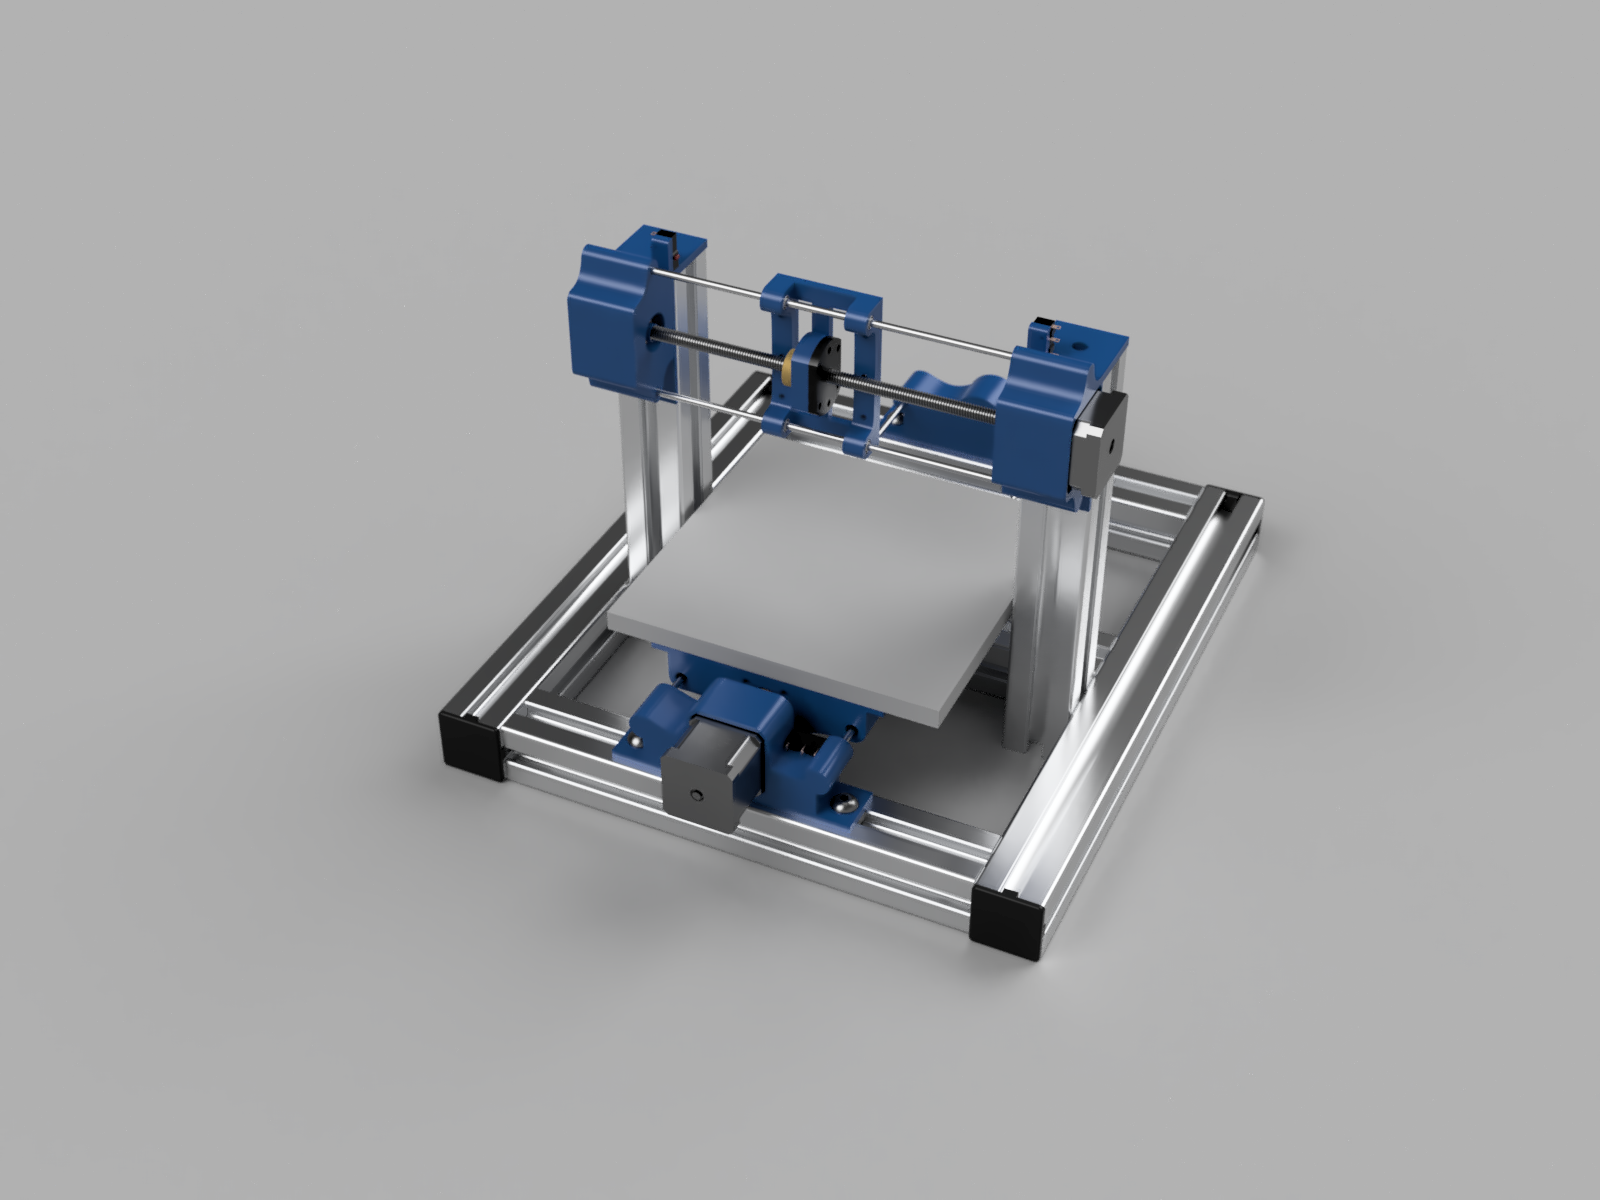 Render of the original PCB Mill X-Axis design